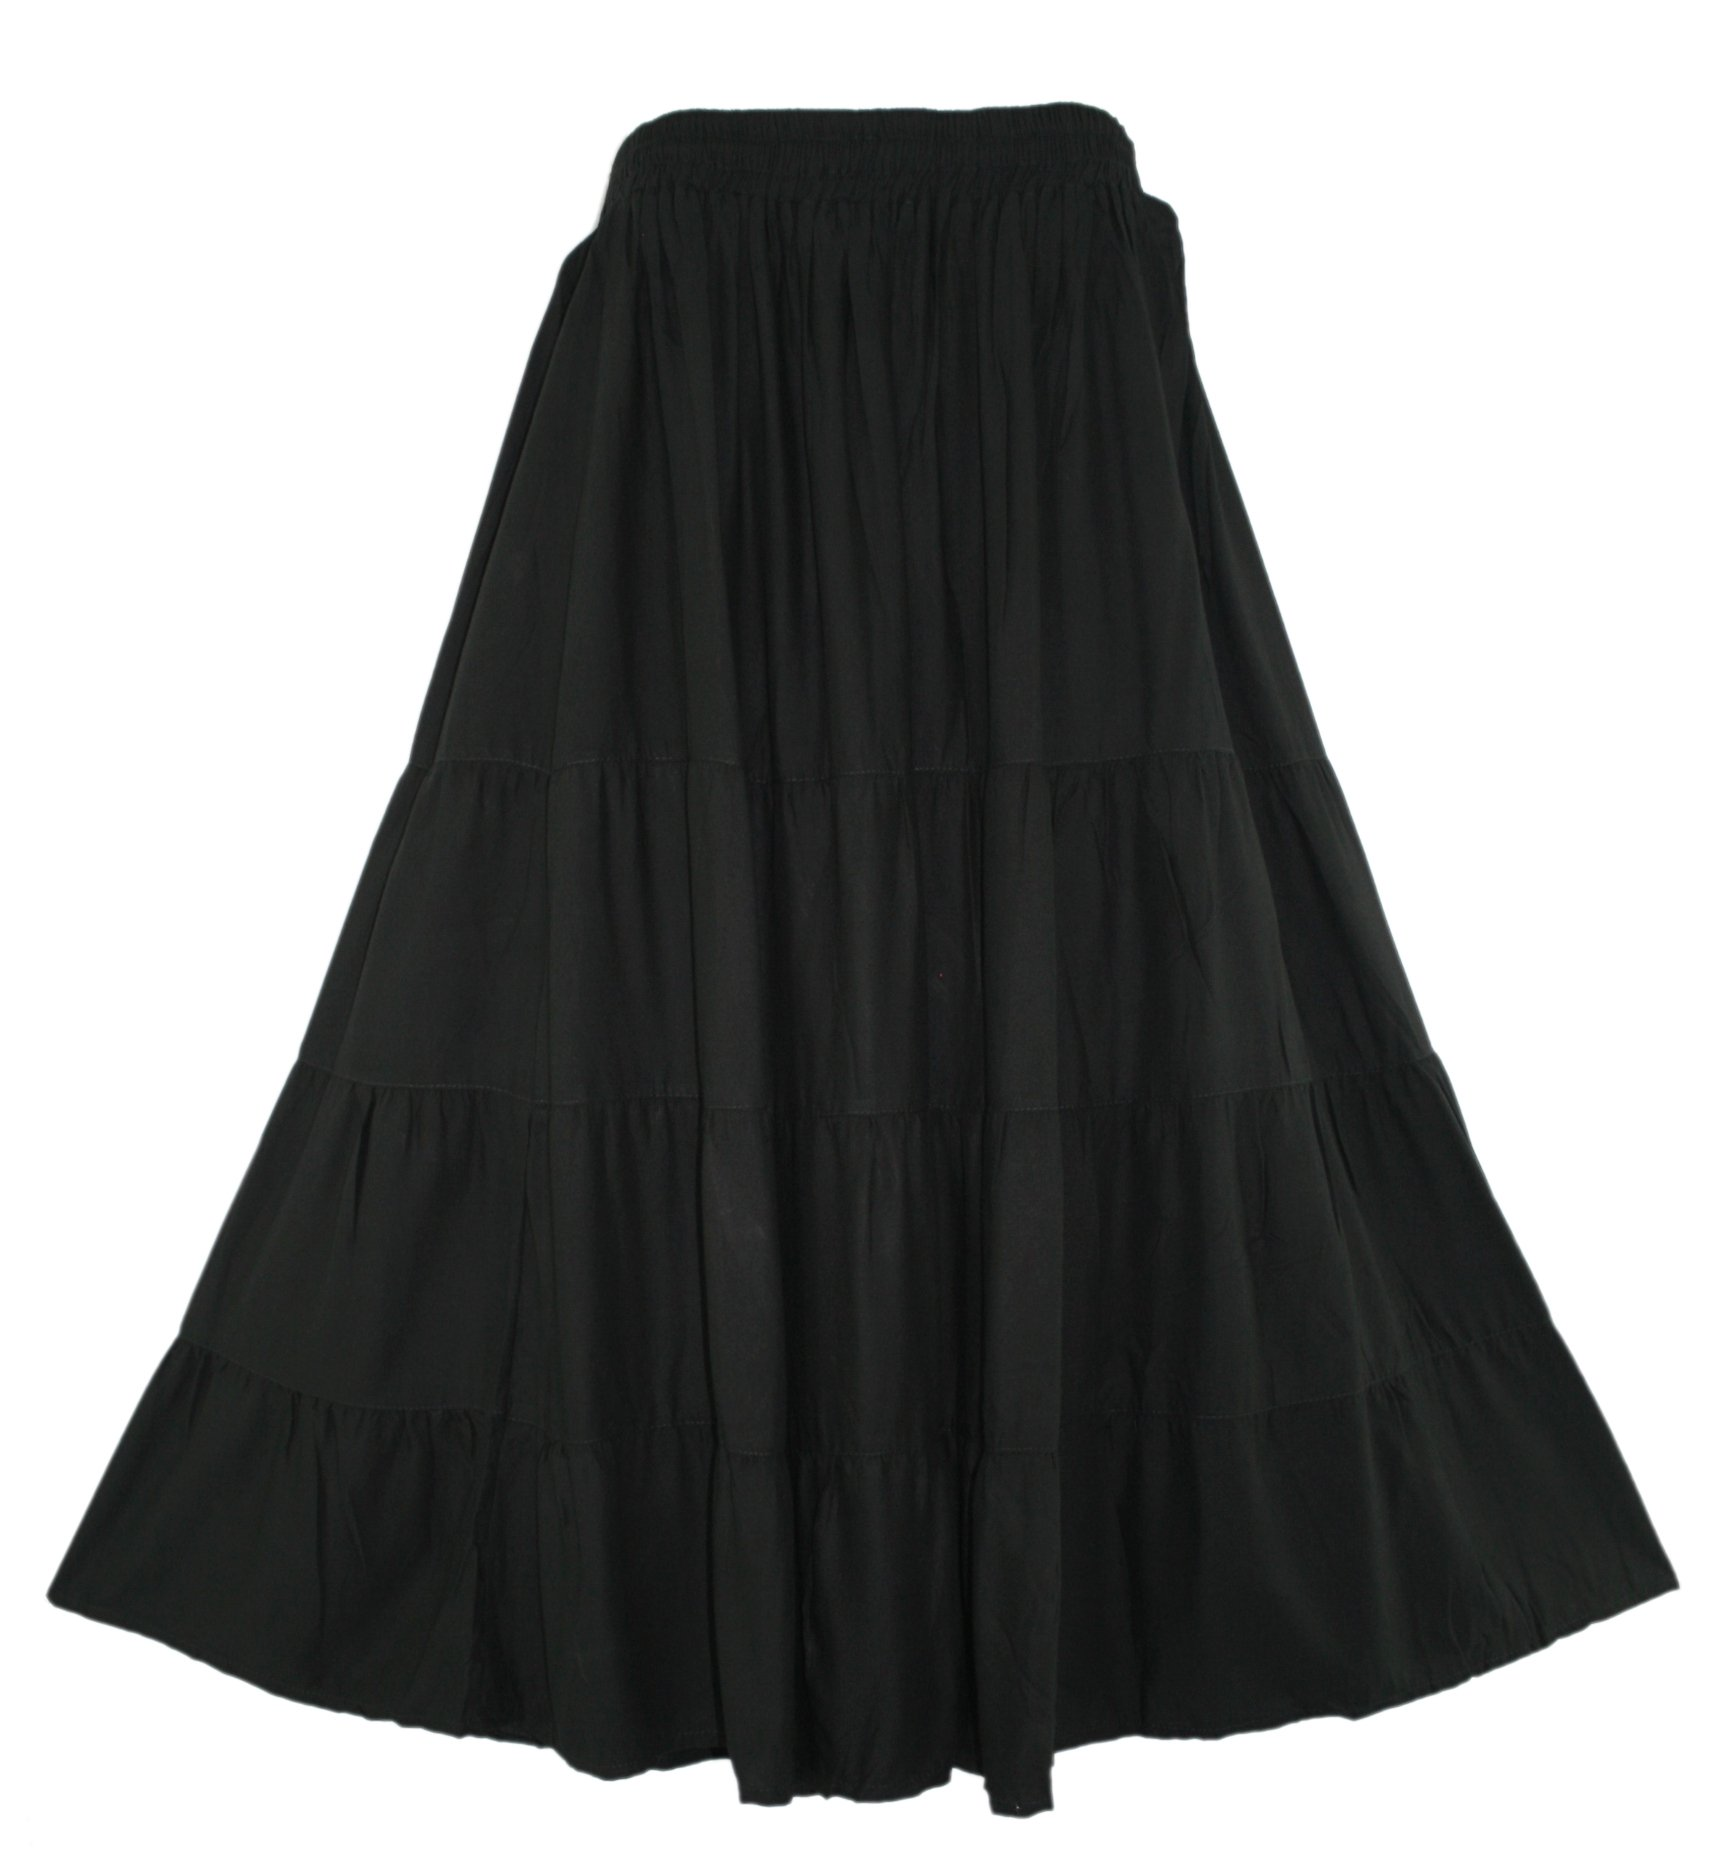 Beautybatik Black BOHO Gypsy Long Maxi Tiered Skirt 1X